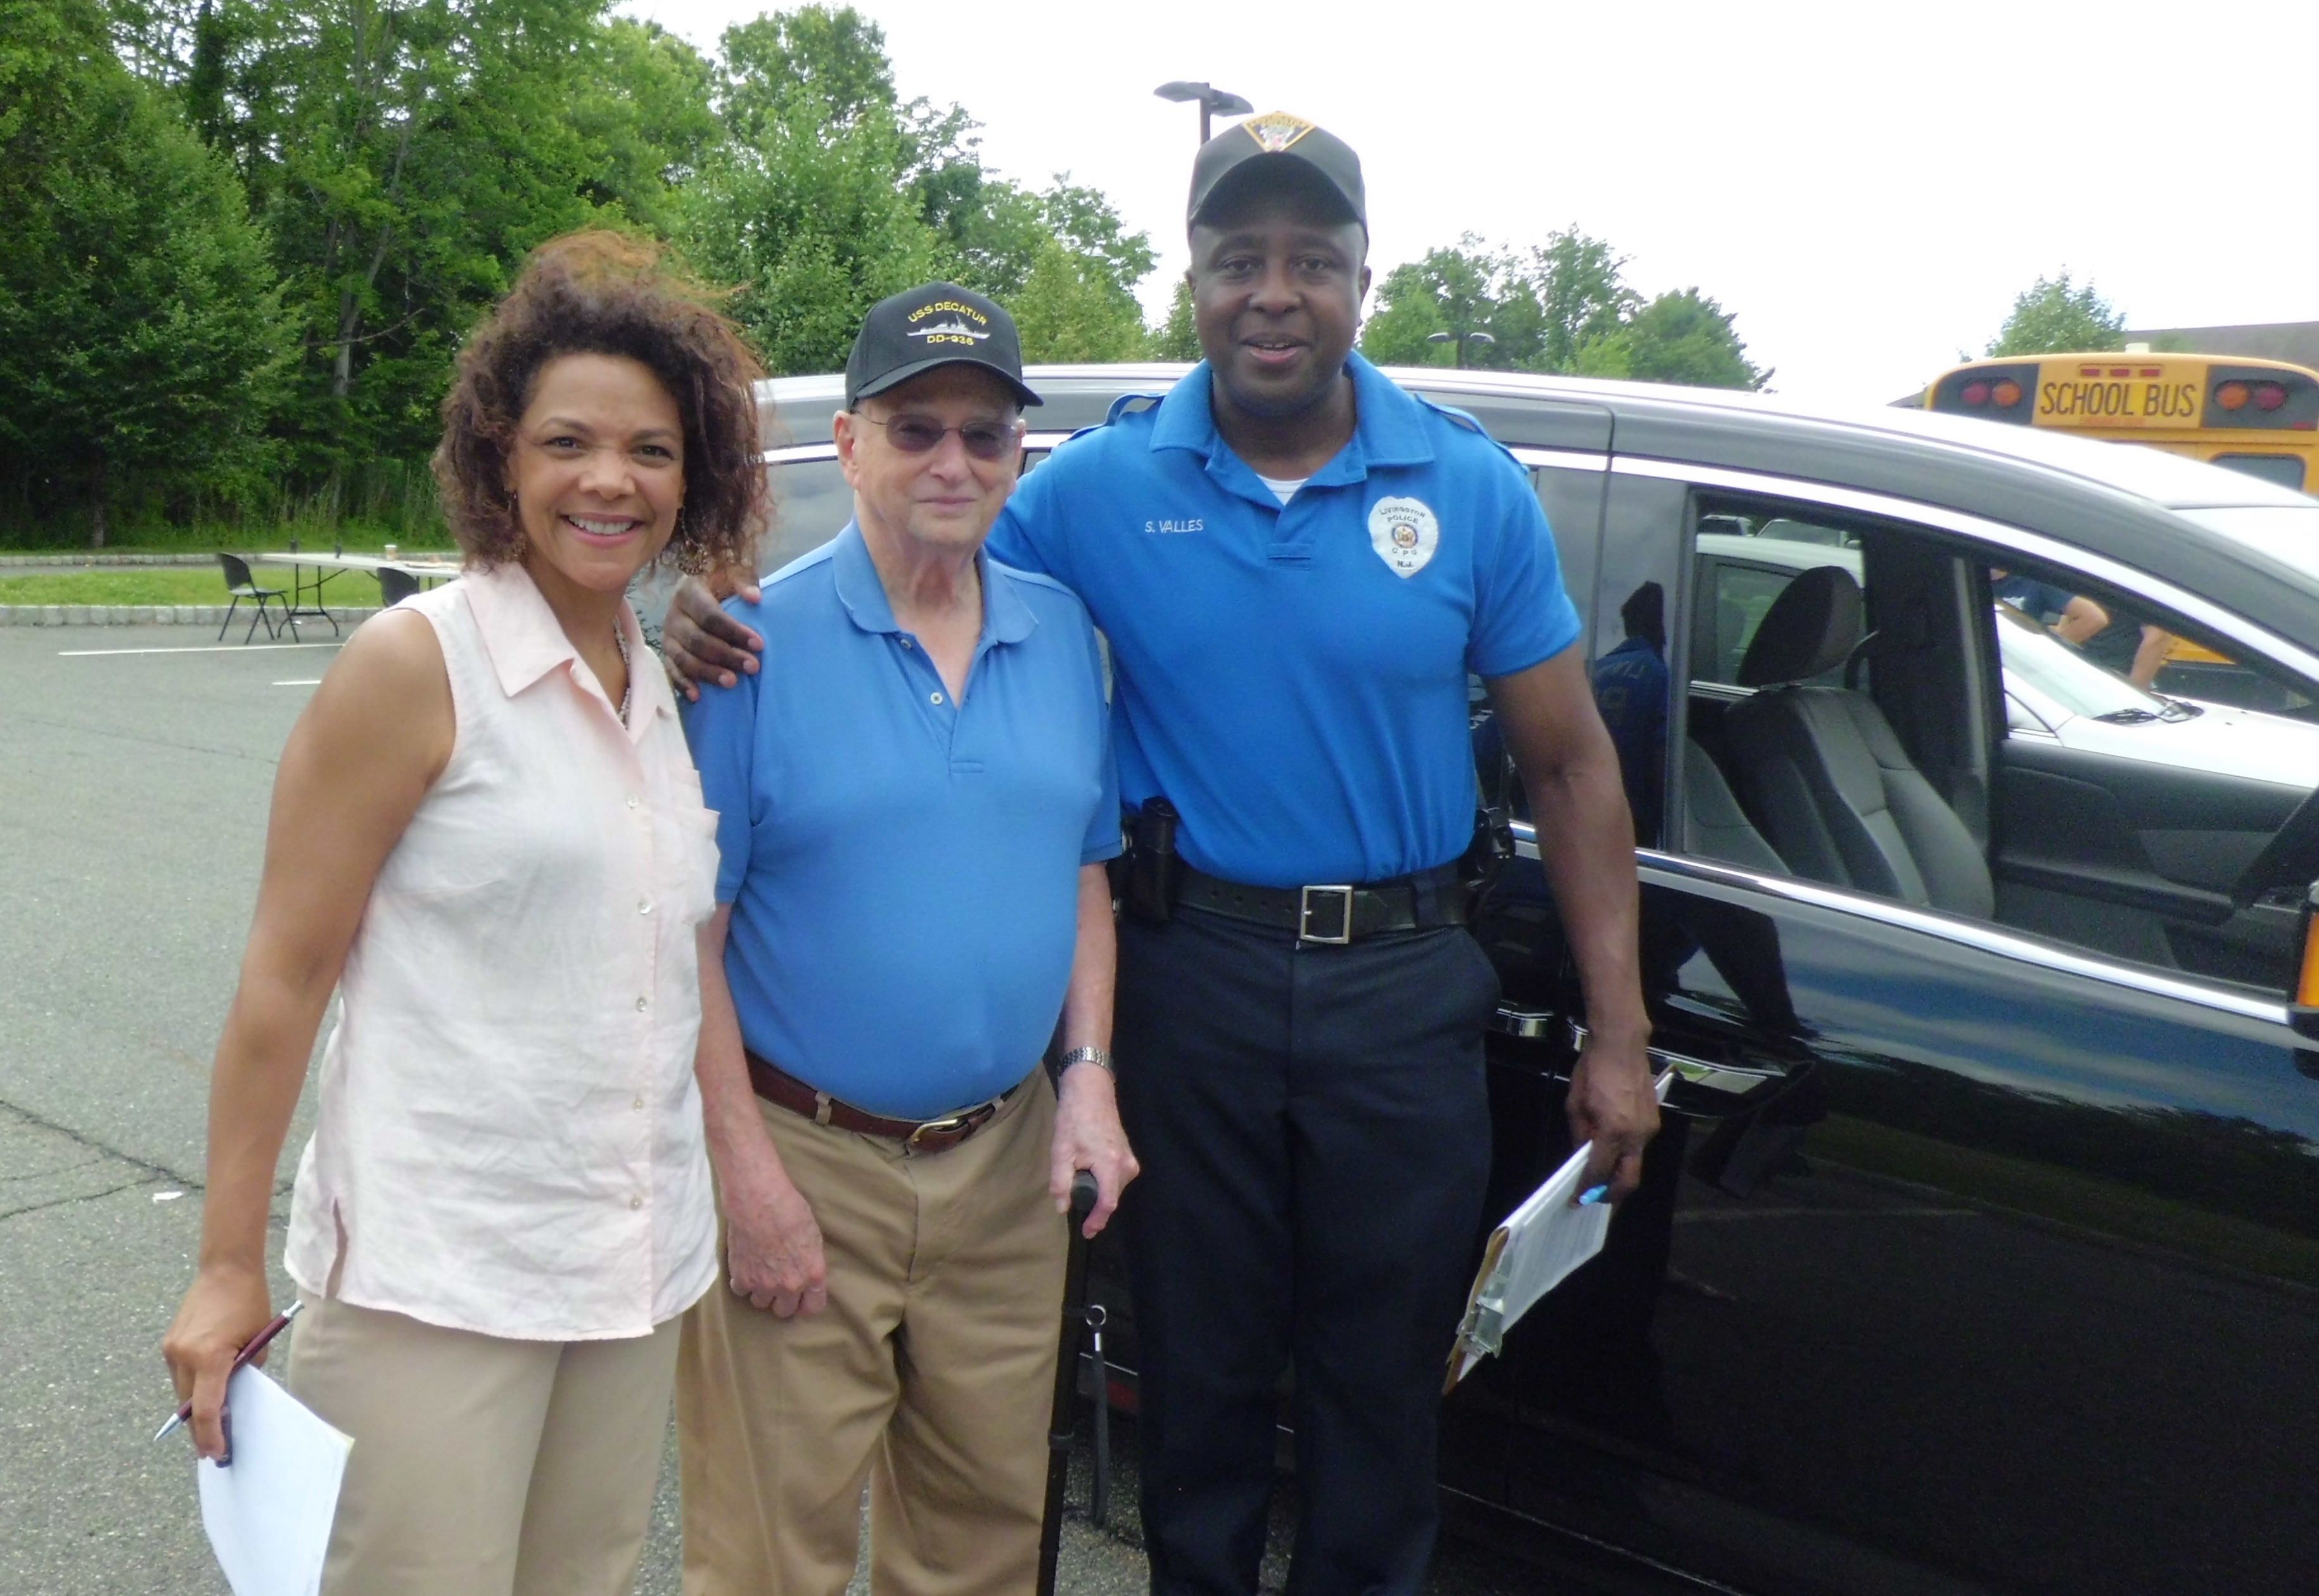 livingston senior personals Find meetups about seniors and meet people in your local community who share your interests.